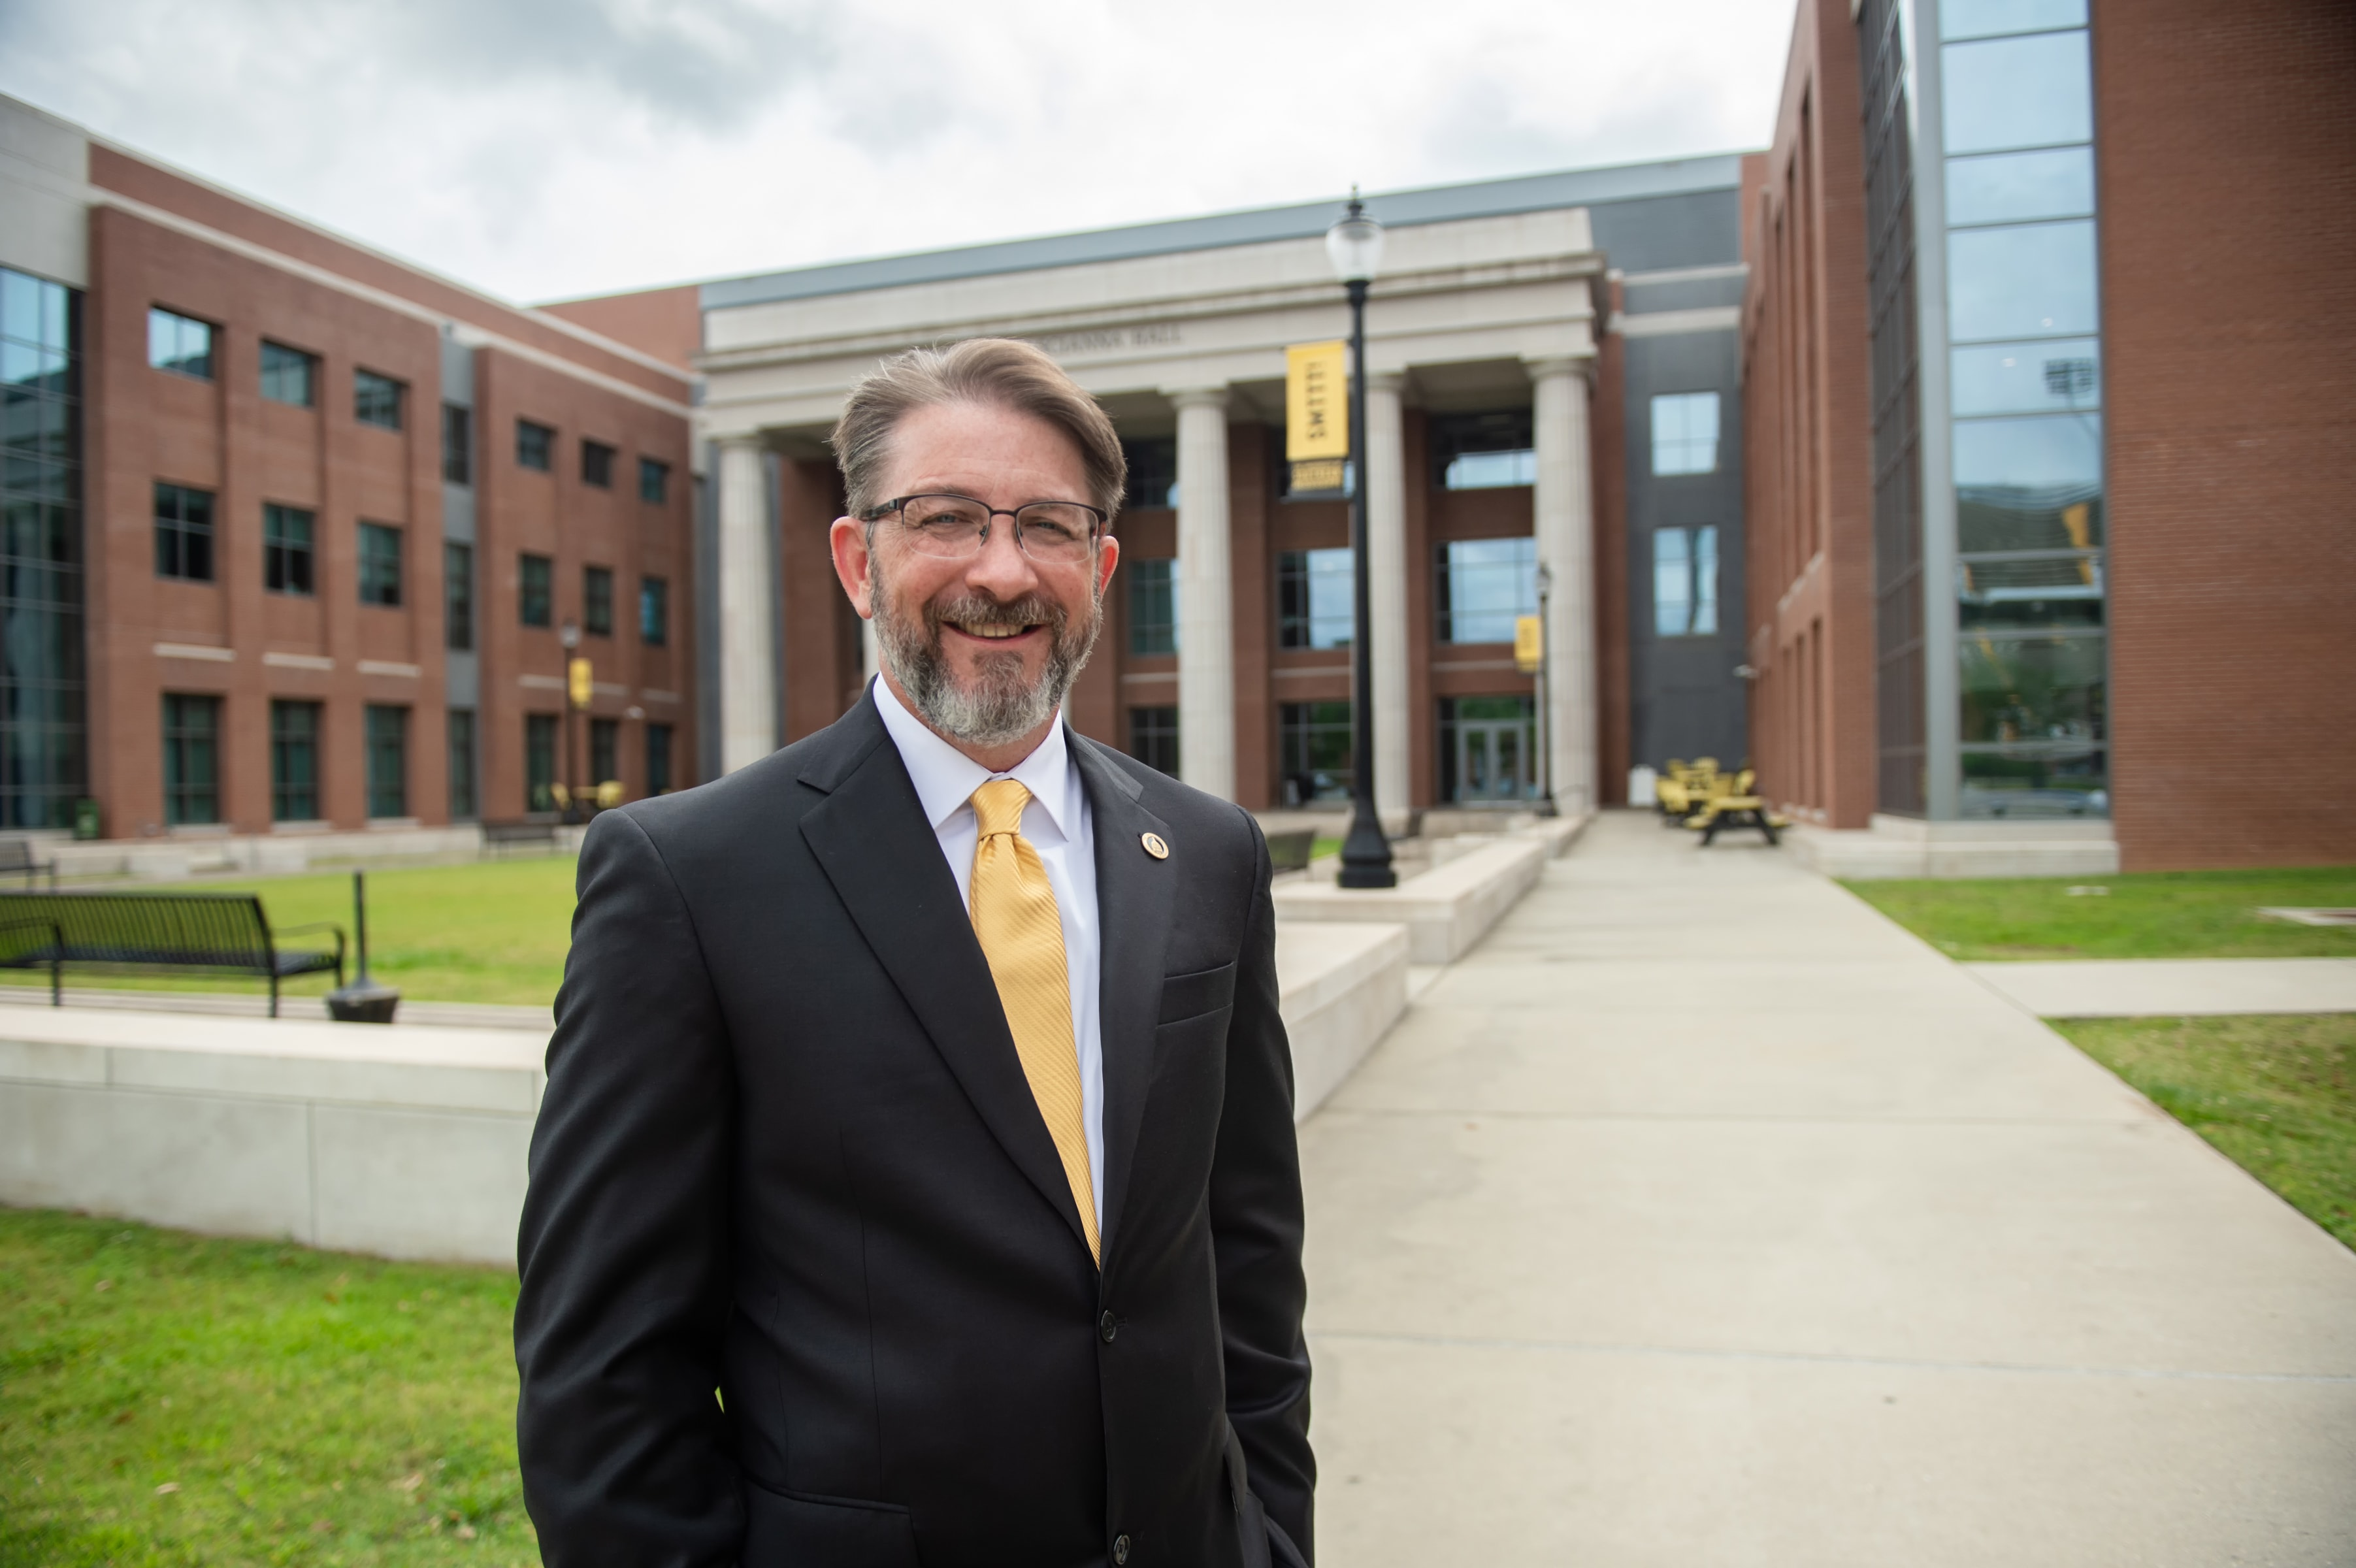 Dr. Bret Becton, Dean of the College of Business and Economic Development